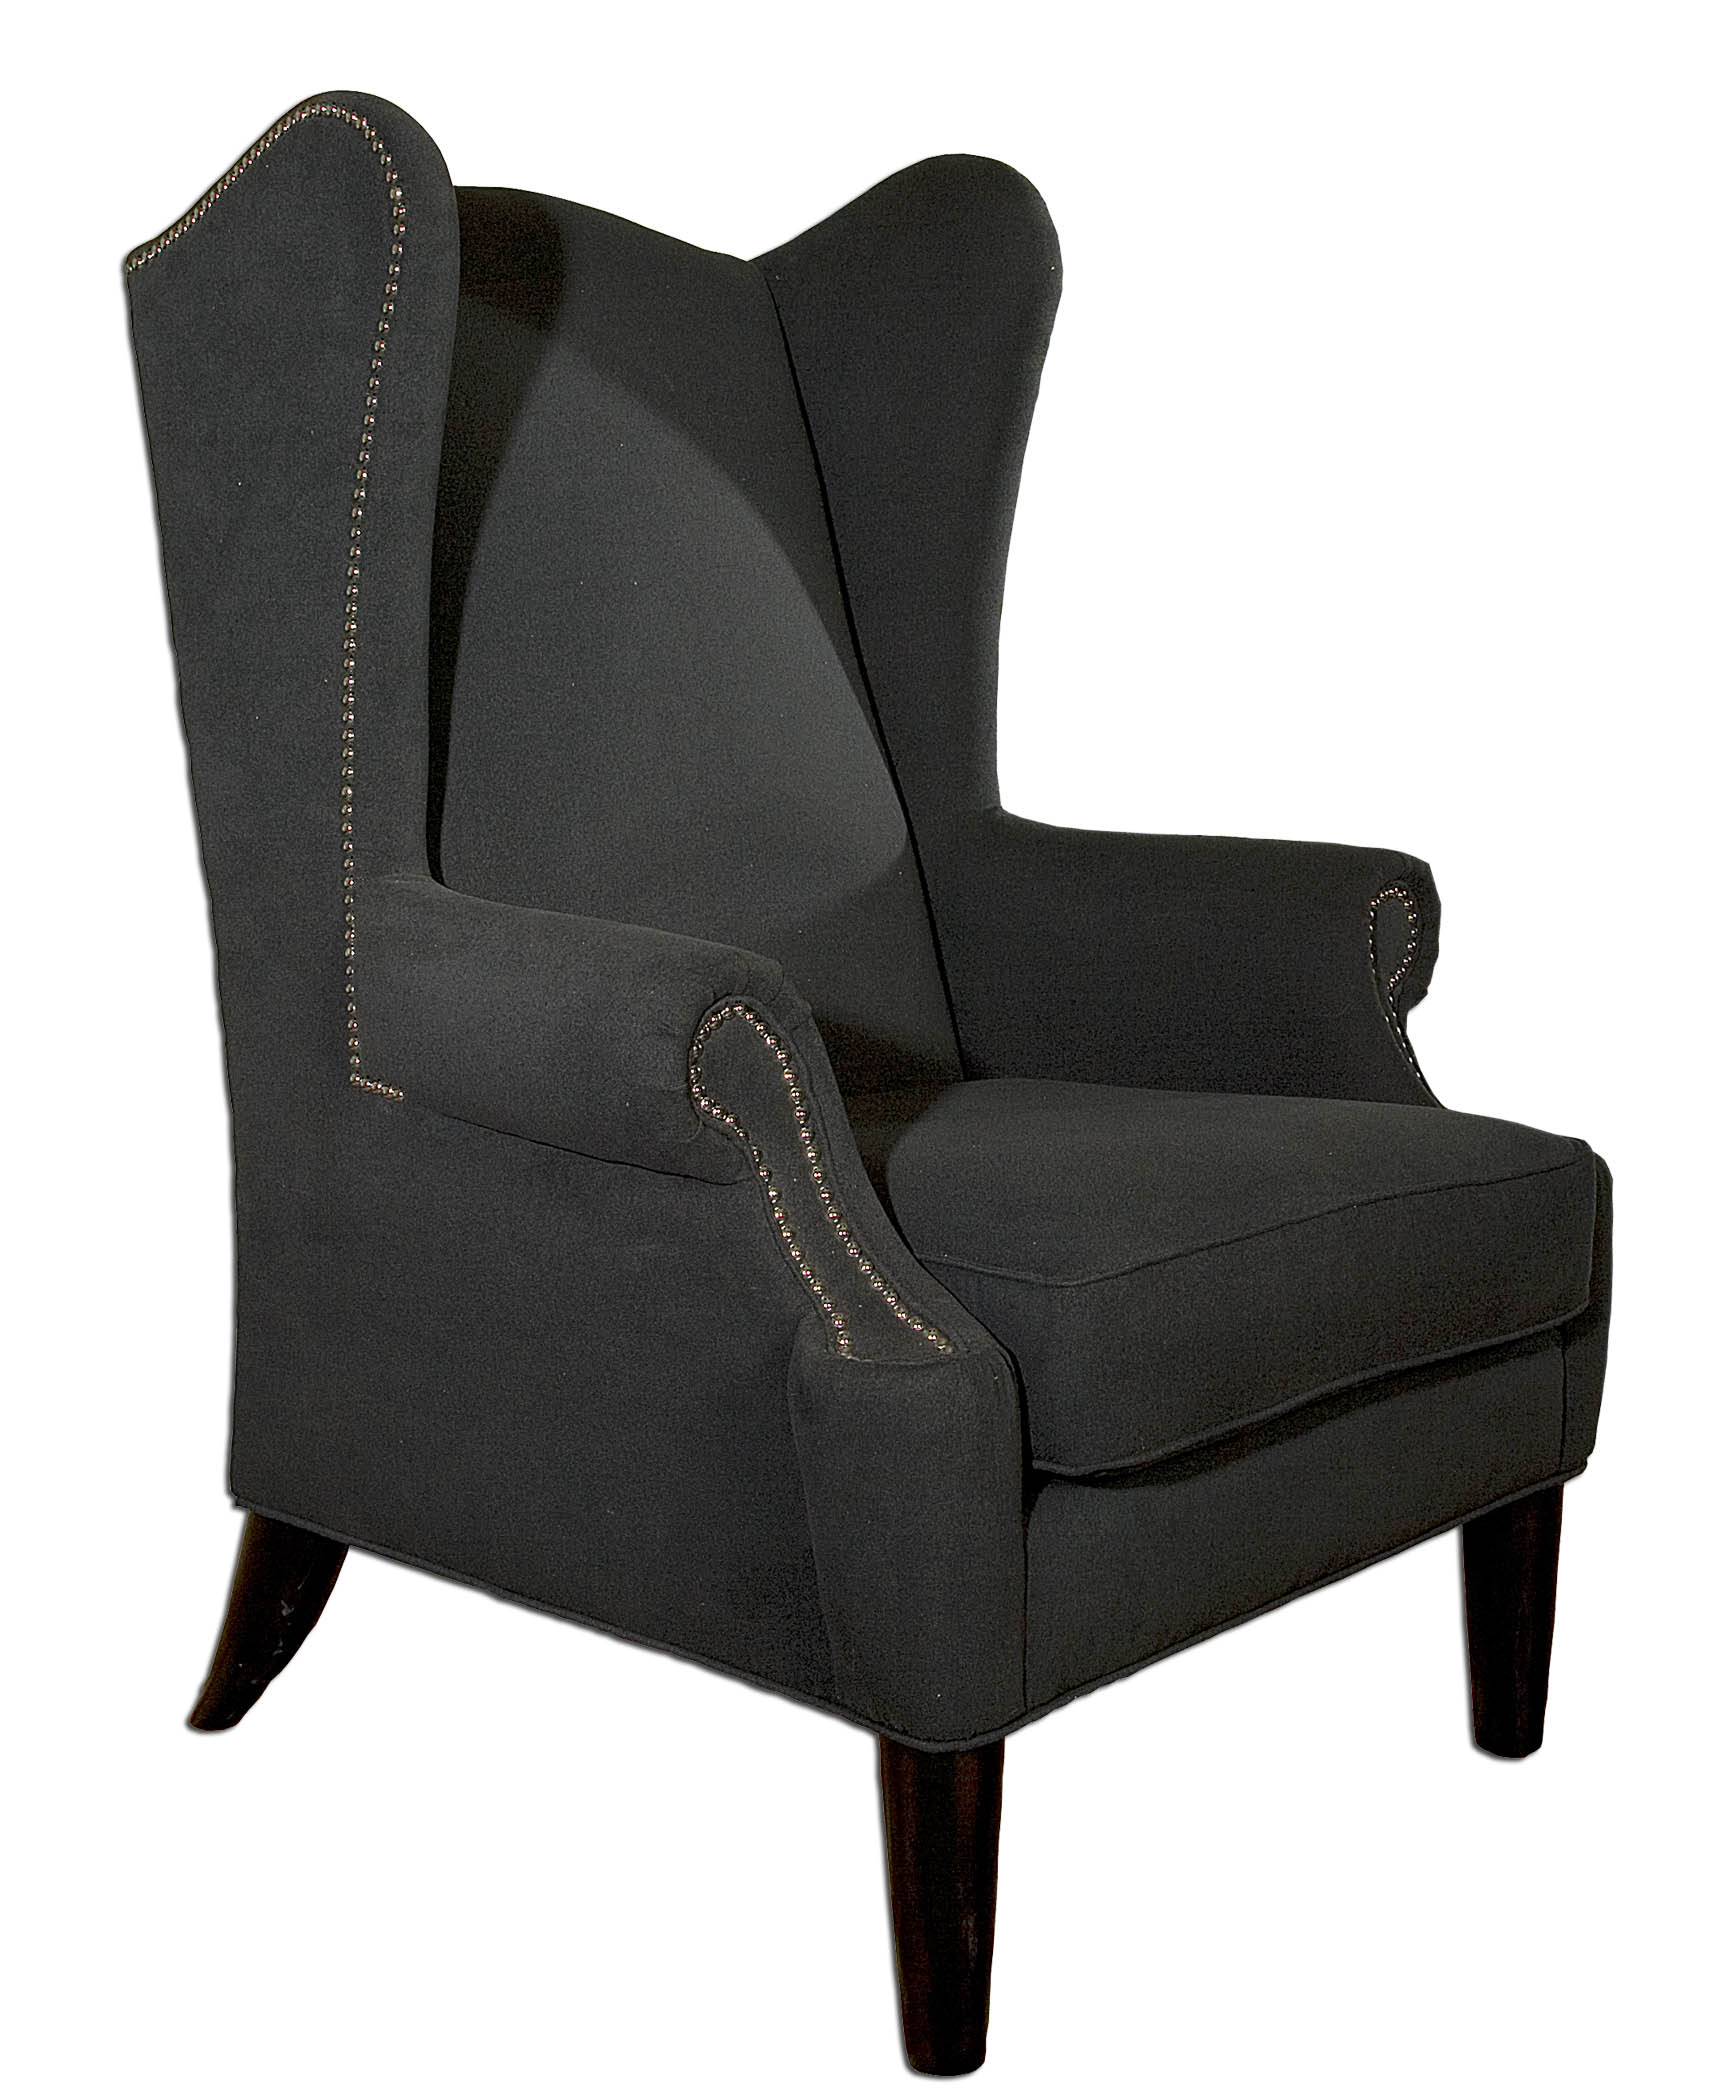 Wingback Office Chair Wing Chair Arm Chair Tall Living Room Chair 50 Quot Tall